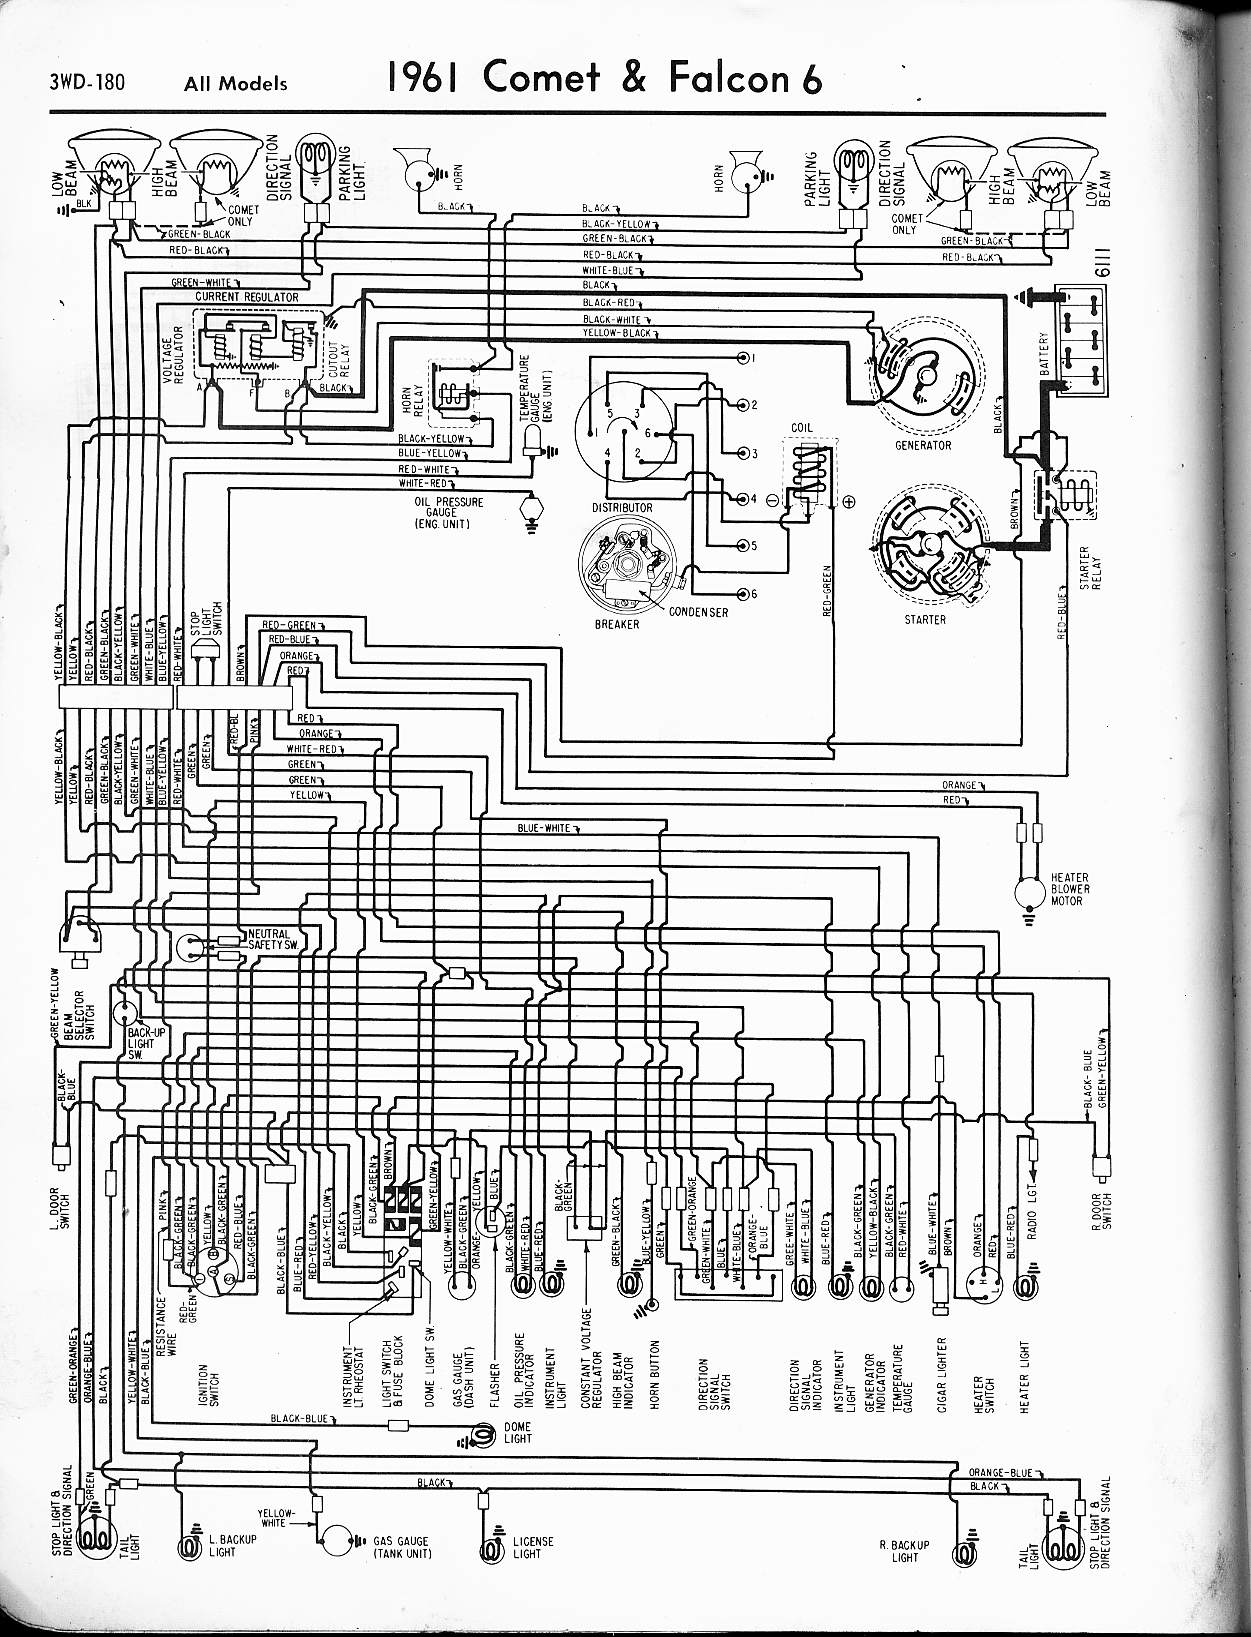 MWire5765 180 au falcon wiring diagram falcon guide \u2022 wiring diagrams j squared co  at alyssarenee.co